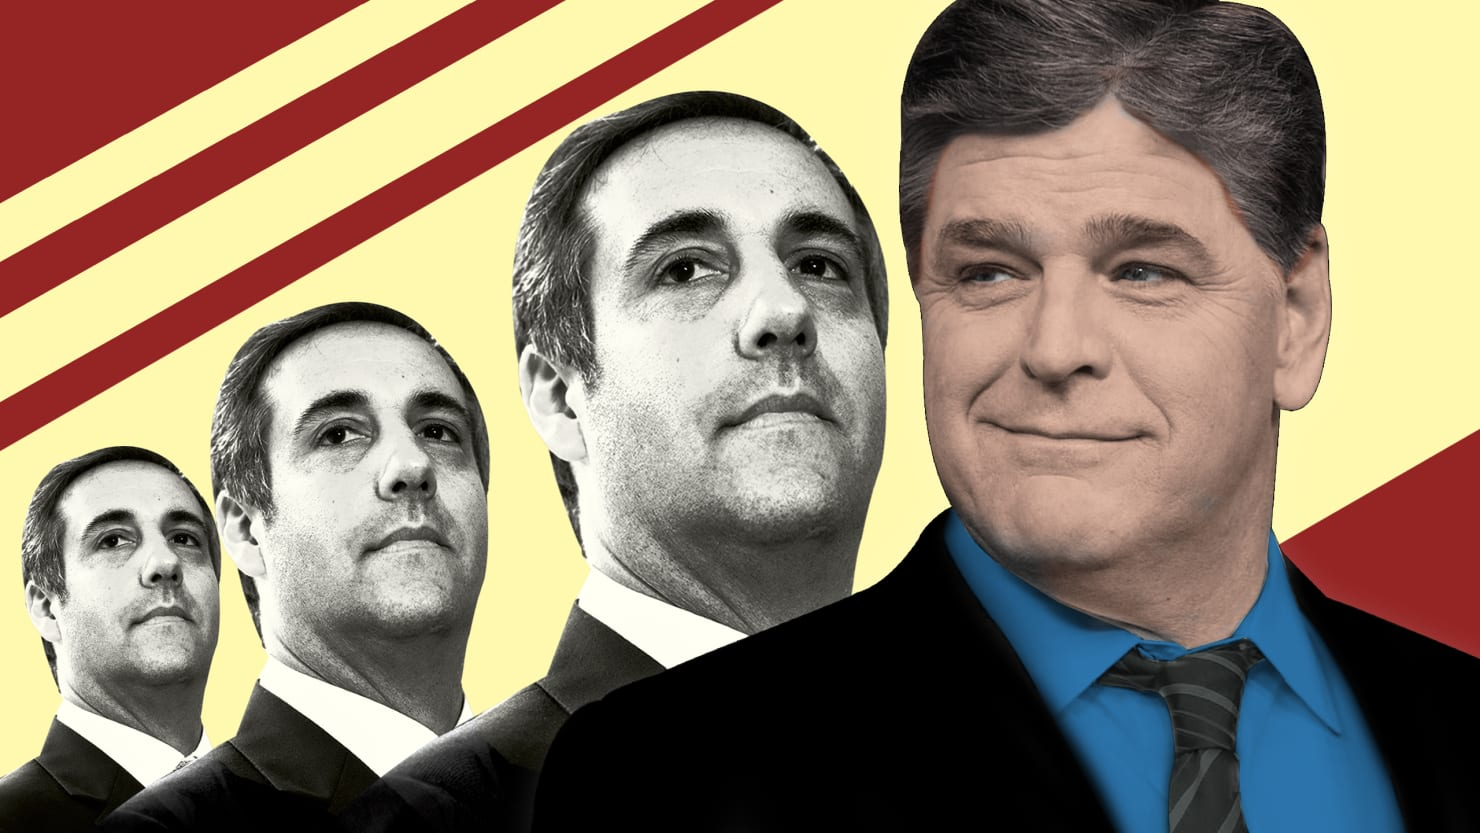 Sean Hannity Kept Getting Deals on Properties Previously Owned by a Fraudster Specializing in Foreclosures